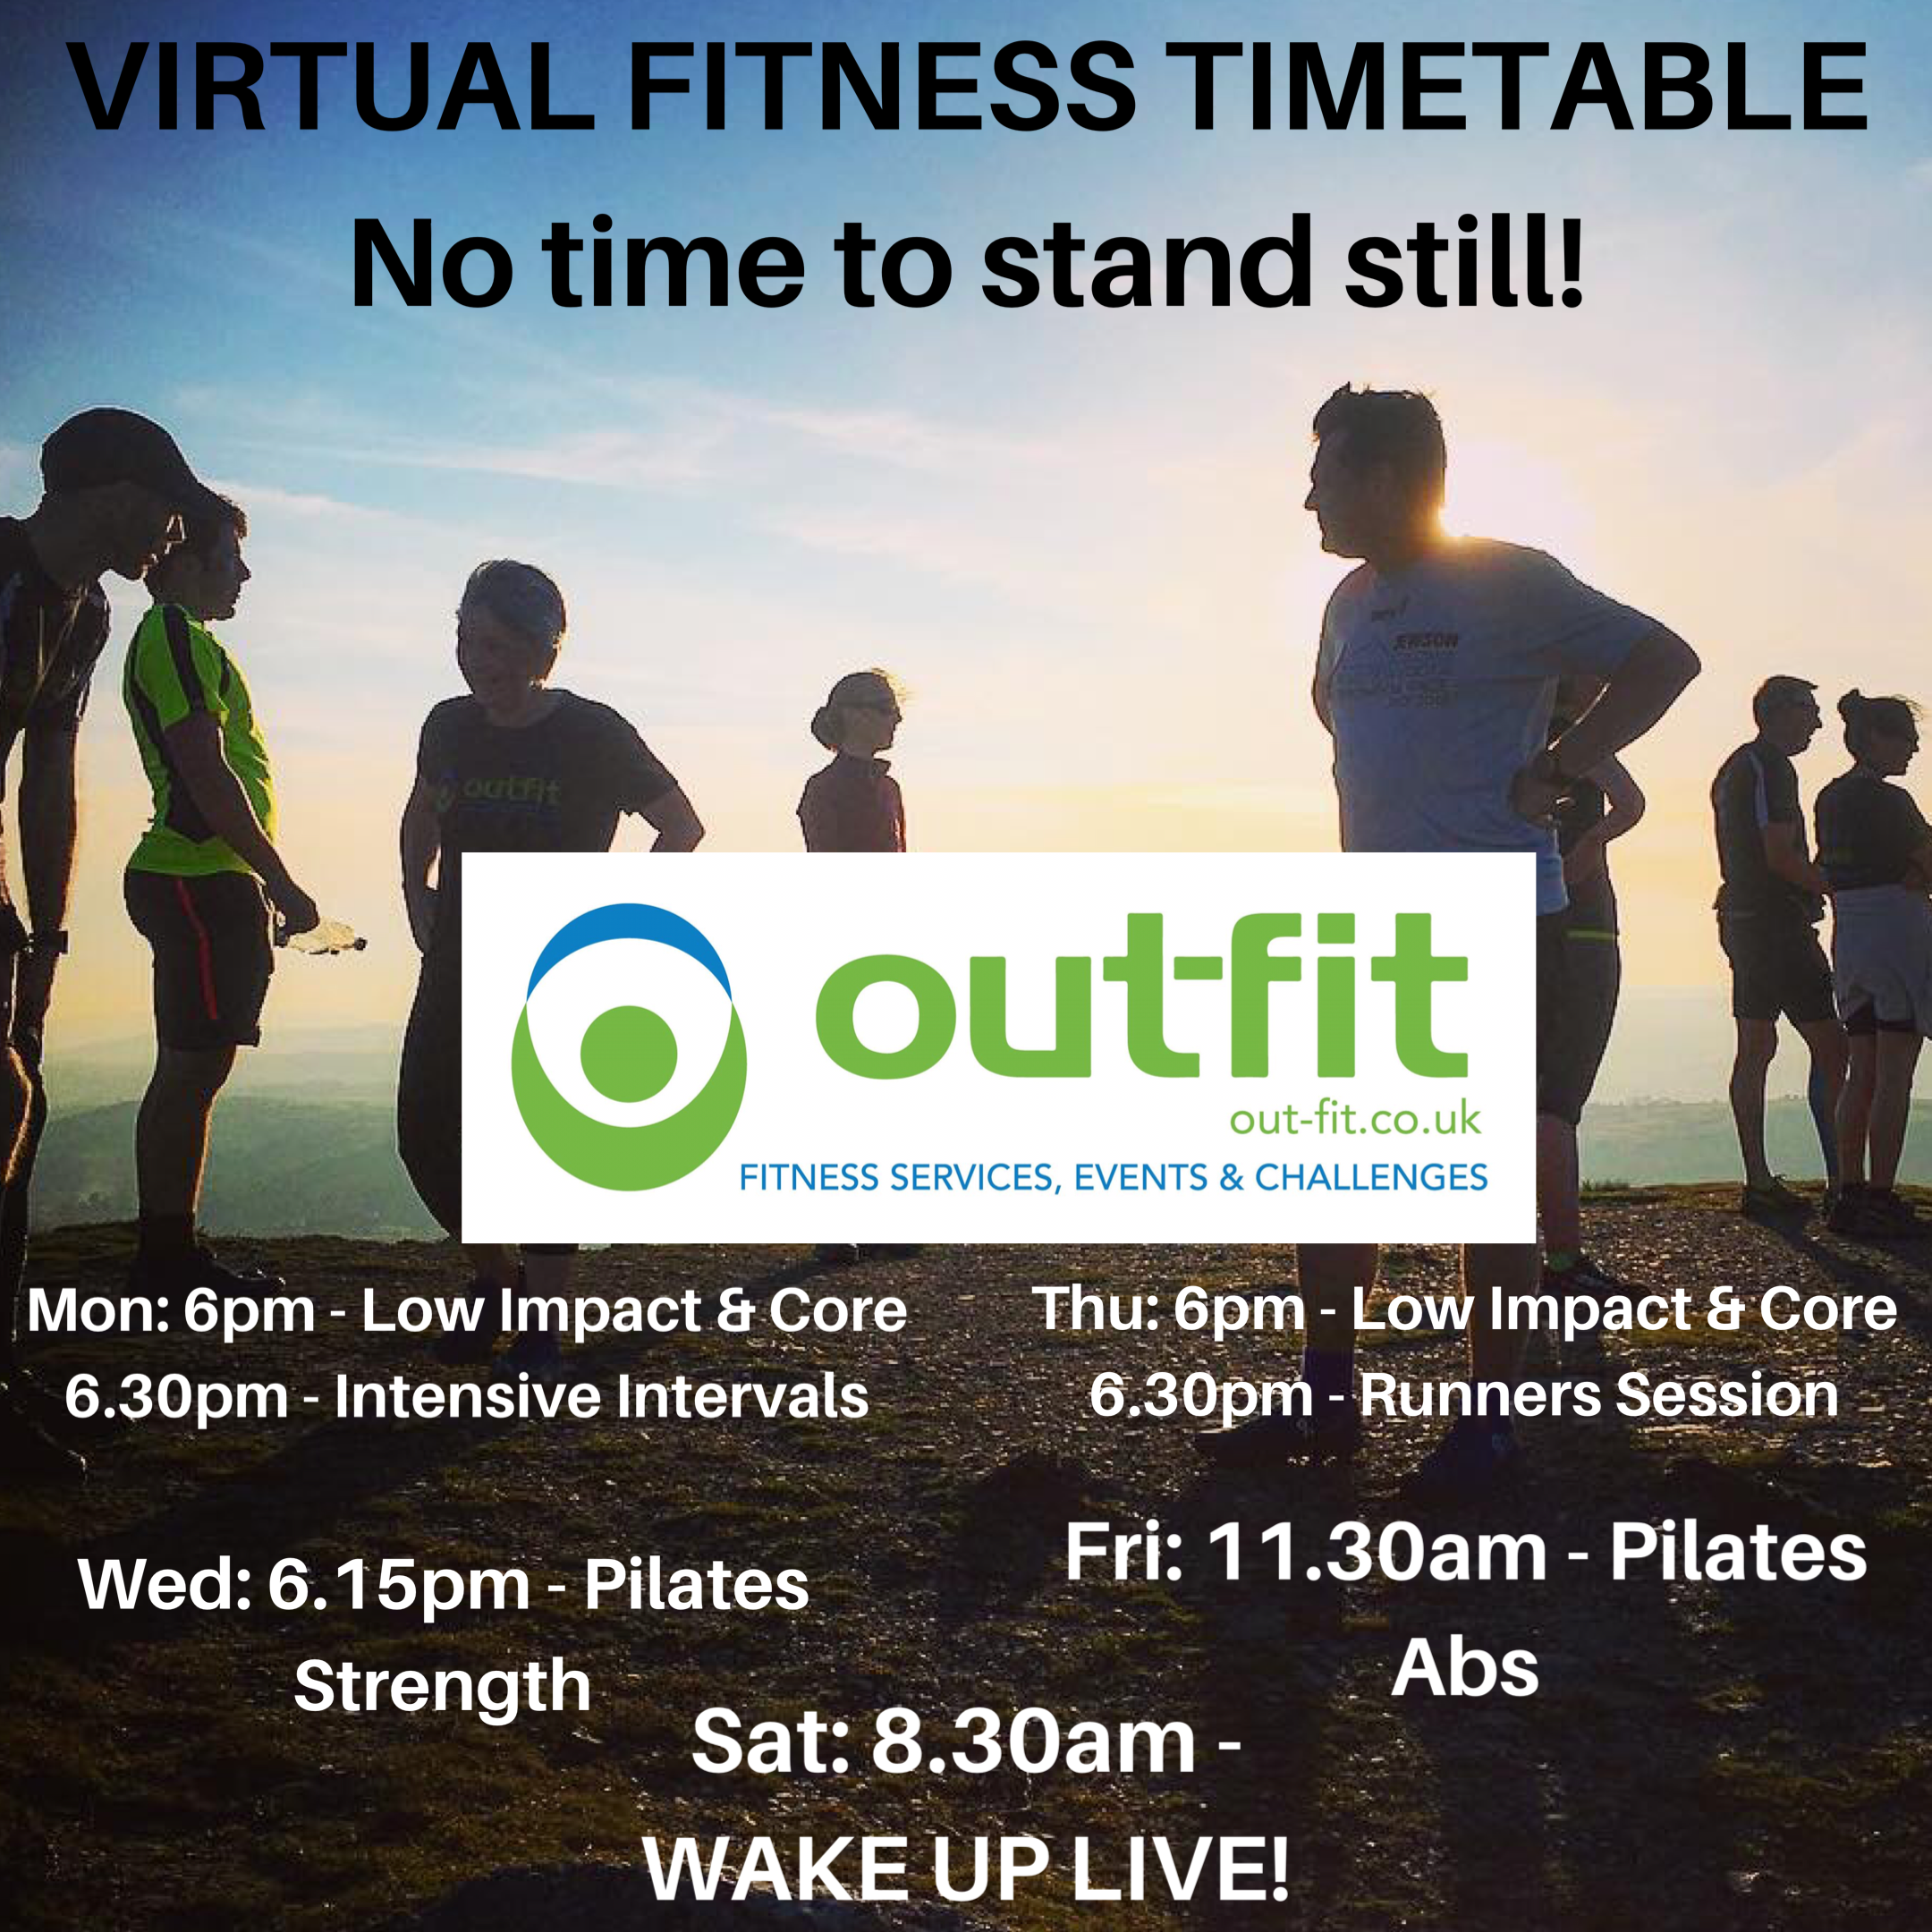 OutFit Online Fitness Club is launched!